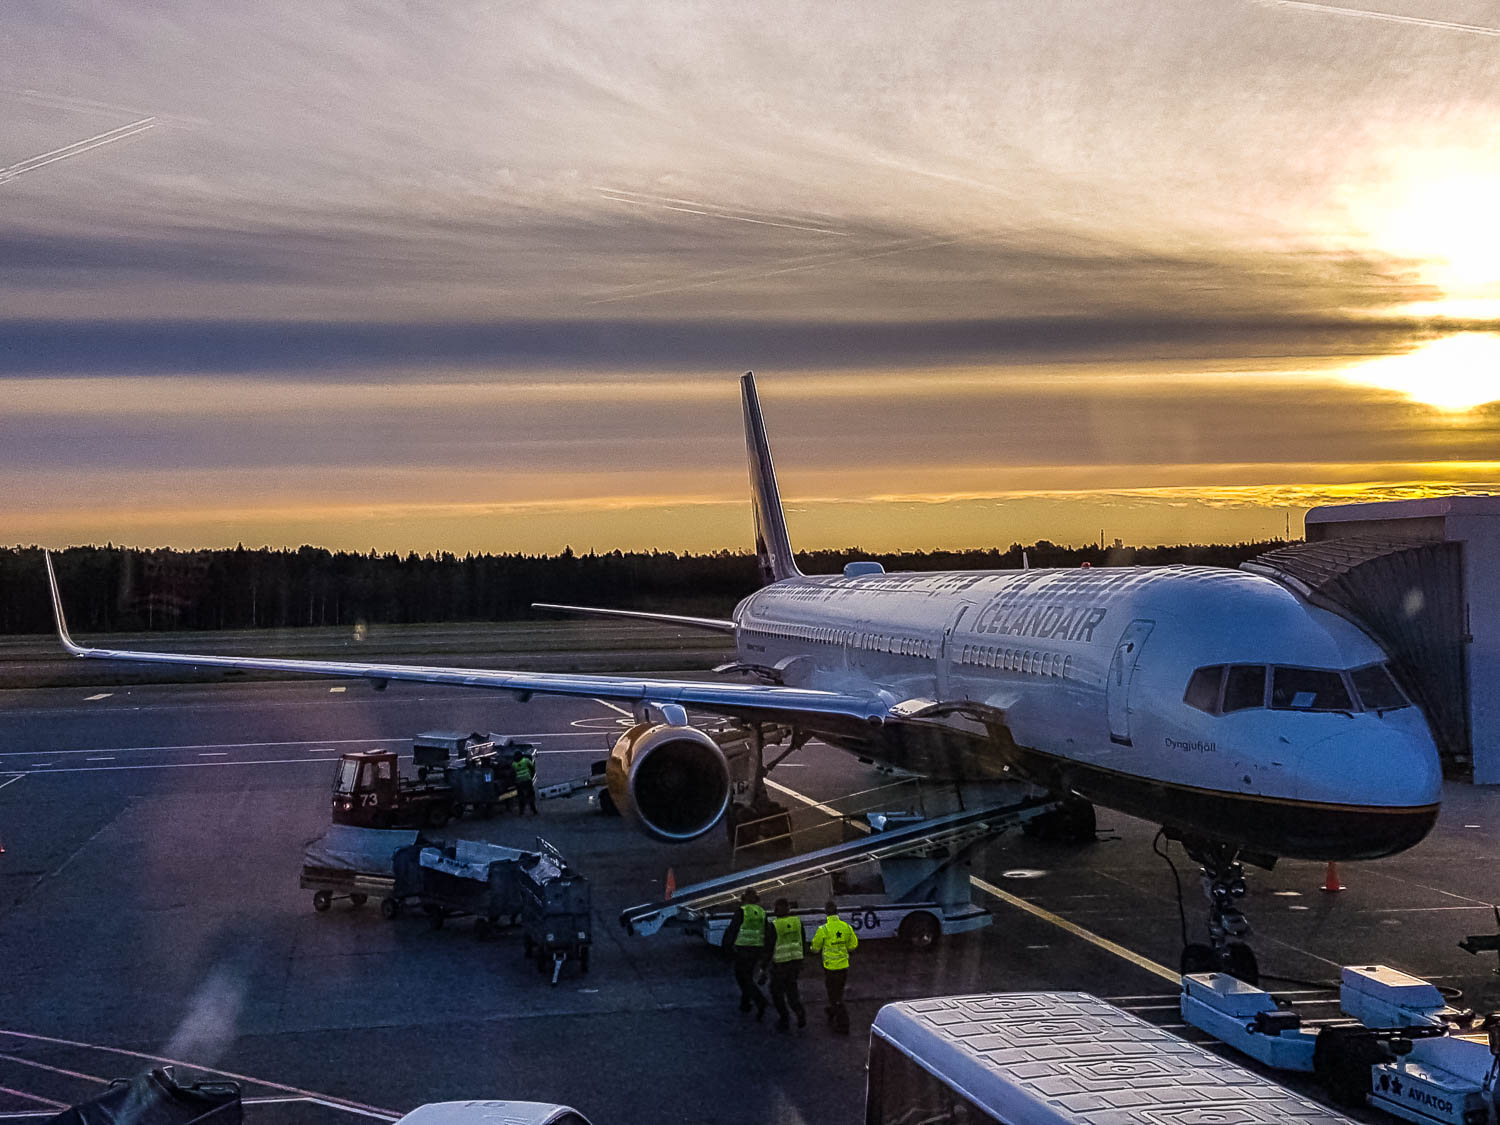 Our fleet to Iceland from Helsinki, Finland - Icelandair